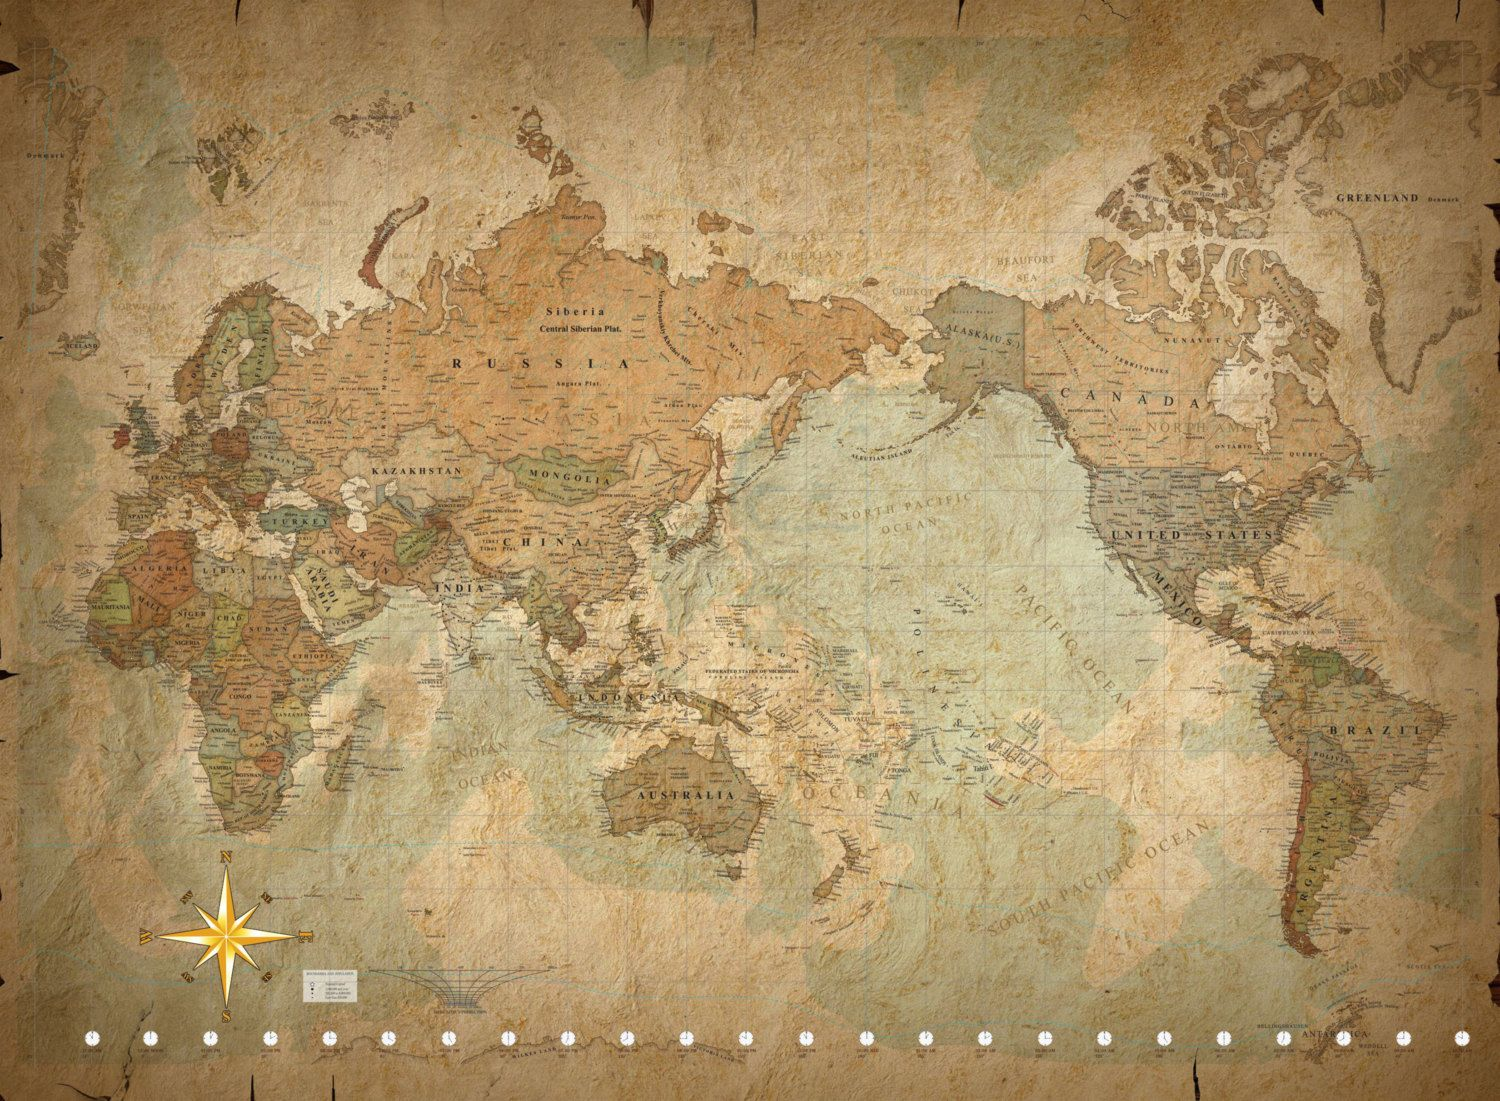 World Map Wall Art Vintage map of the world wall art - canvas or ...